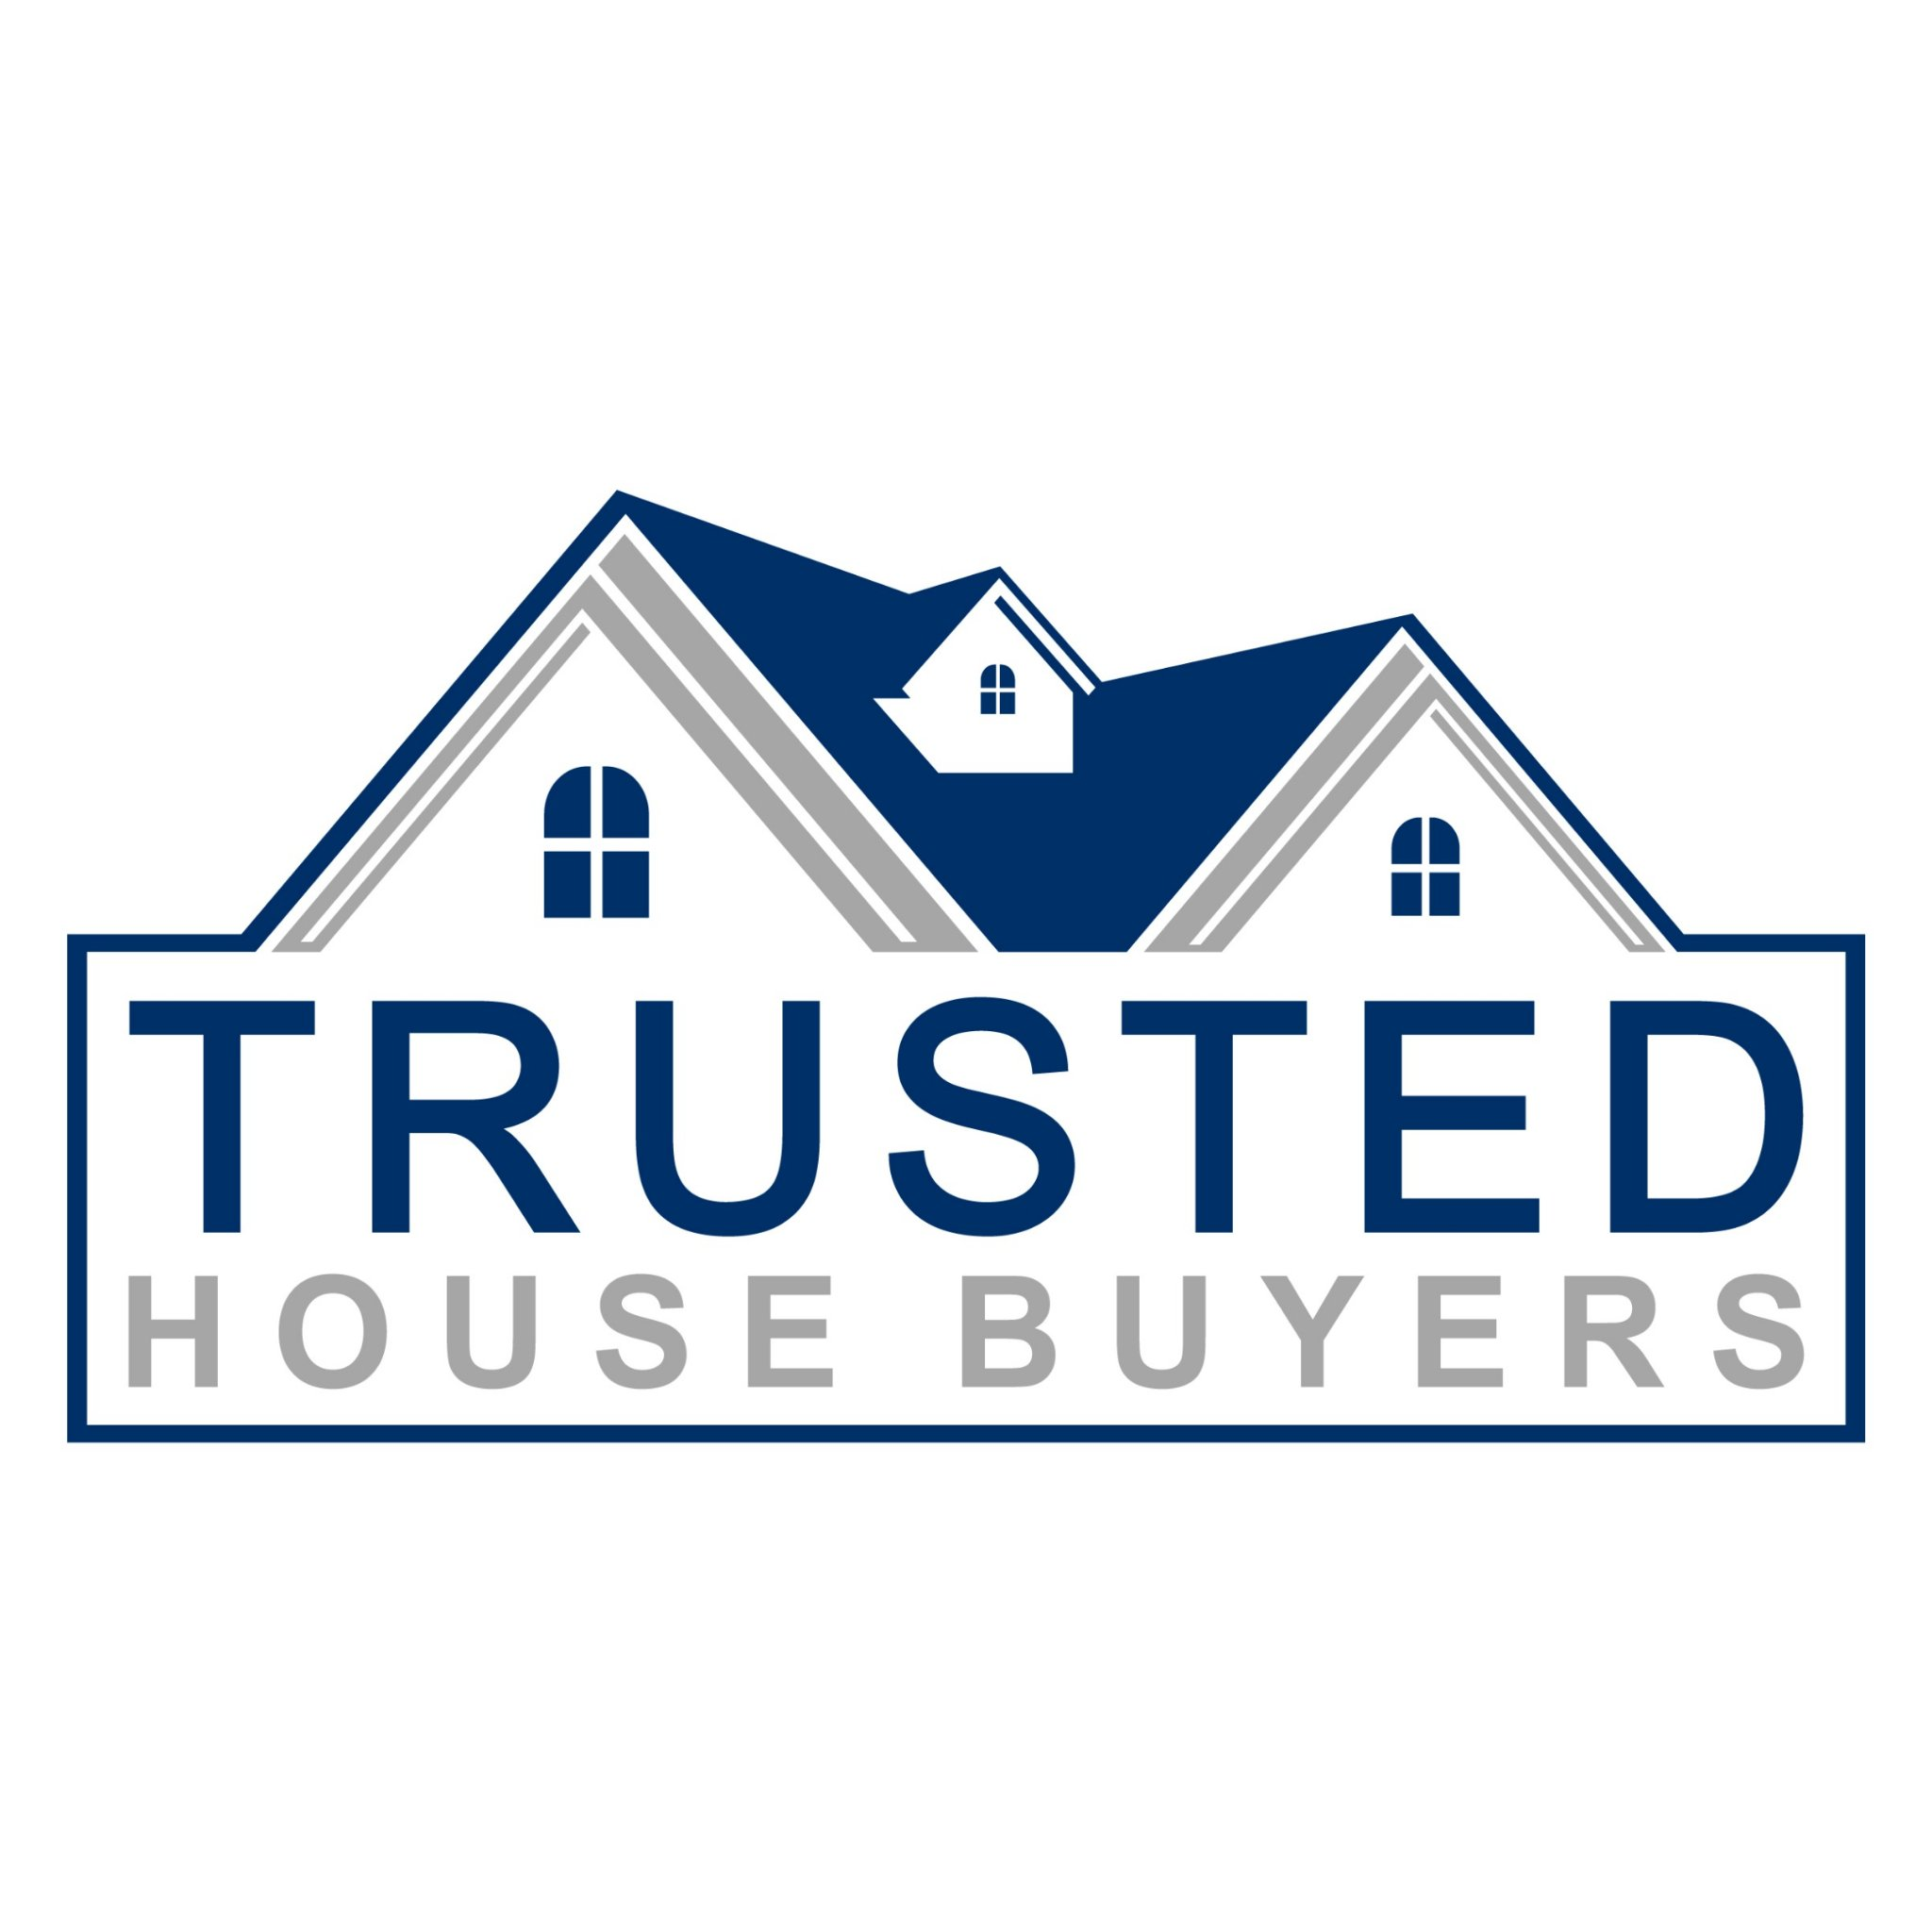 Trusted House Buyers is Buying Homes Fast During COVID-19